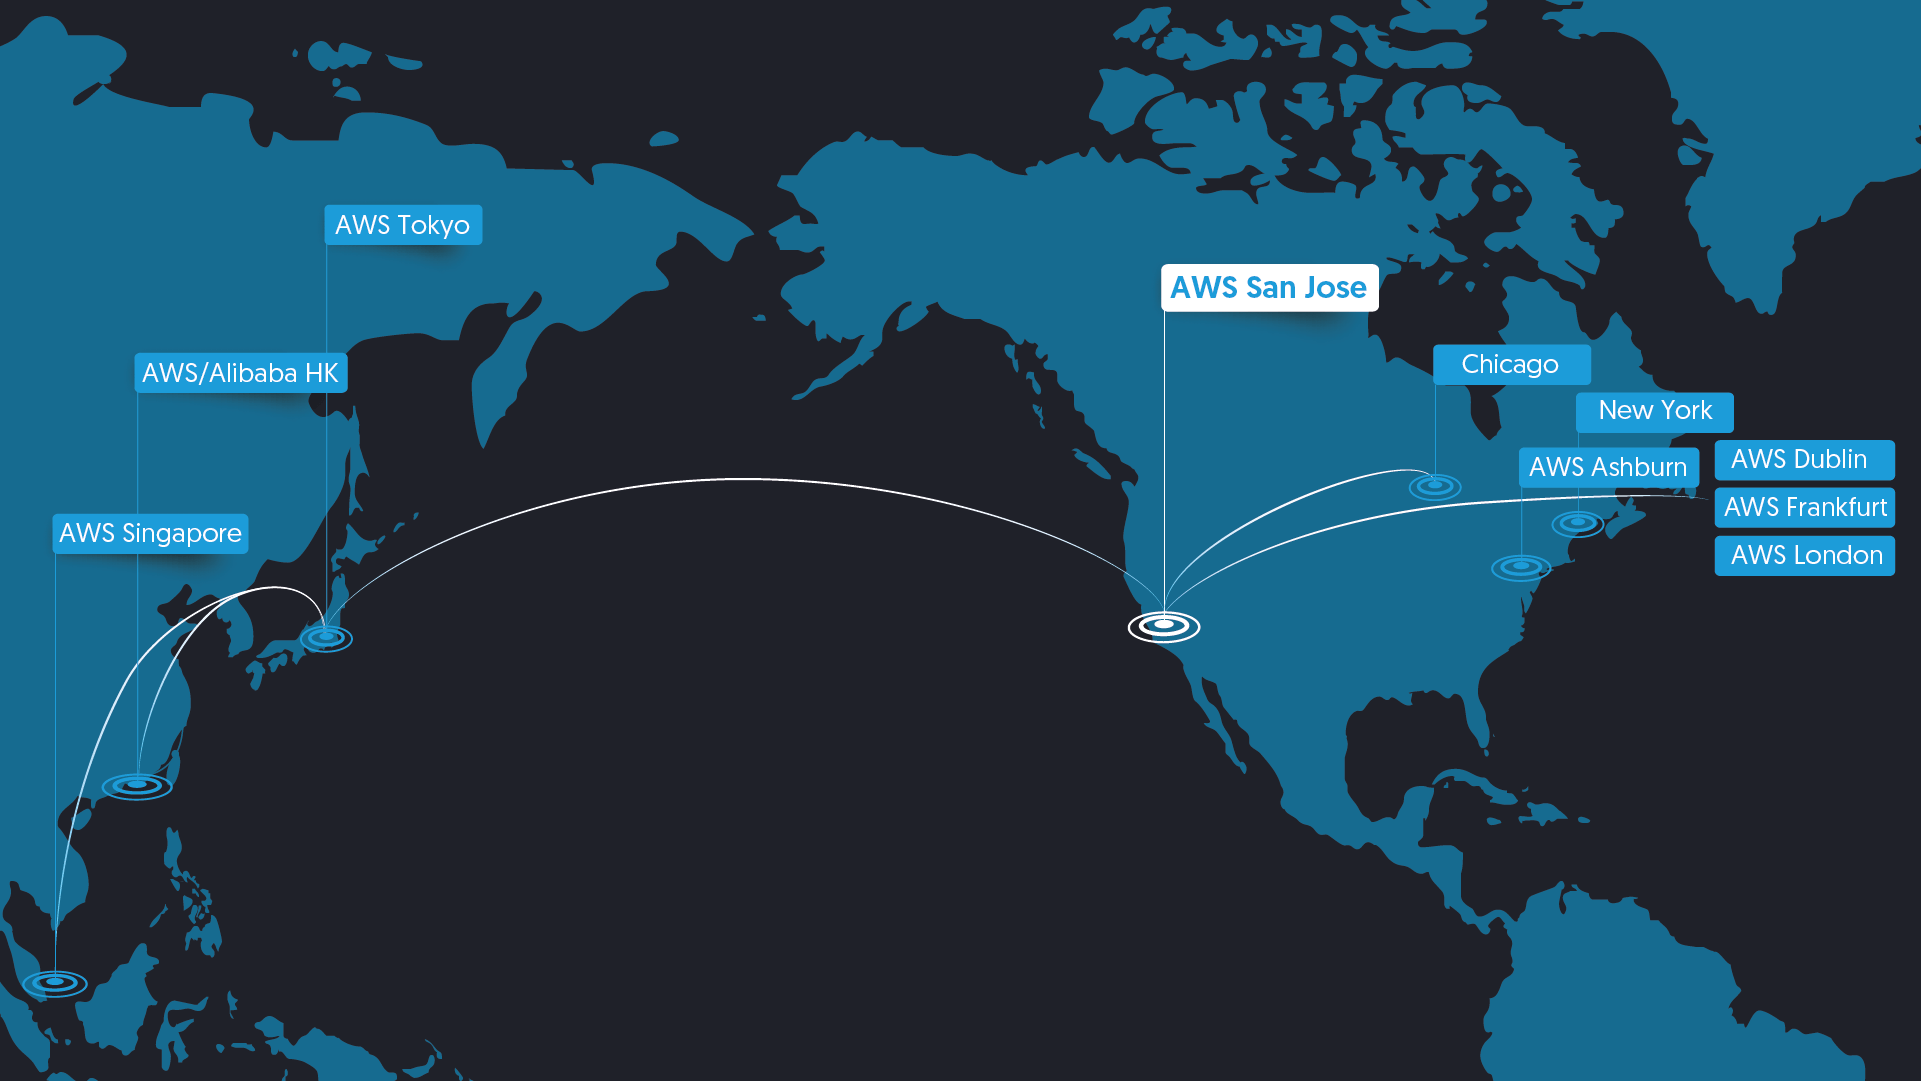 Avelacom Extends Low Latency Connectivity and Data Solutions to AWS US West (N. California) Region